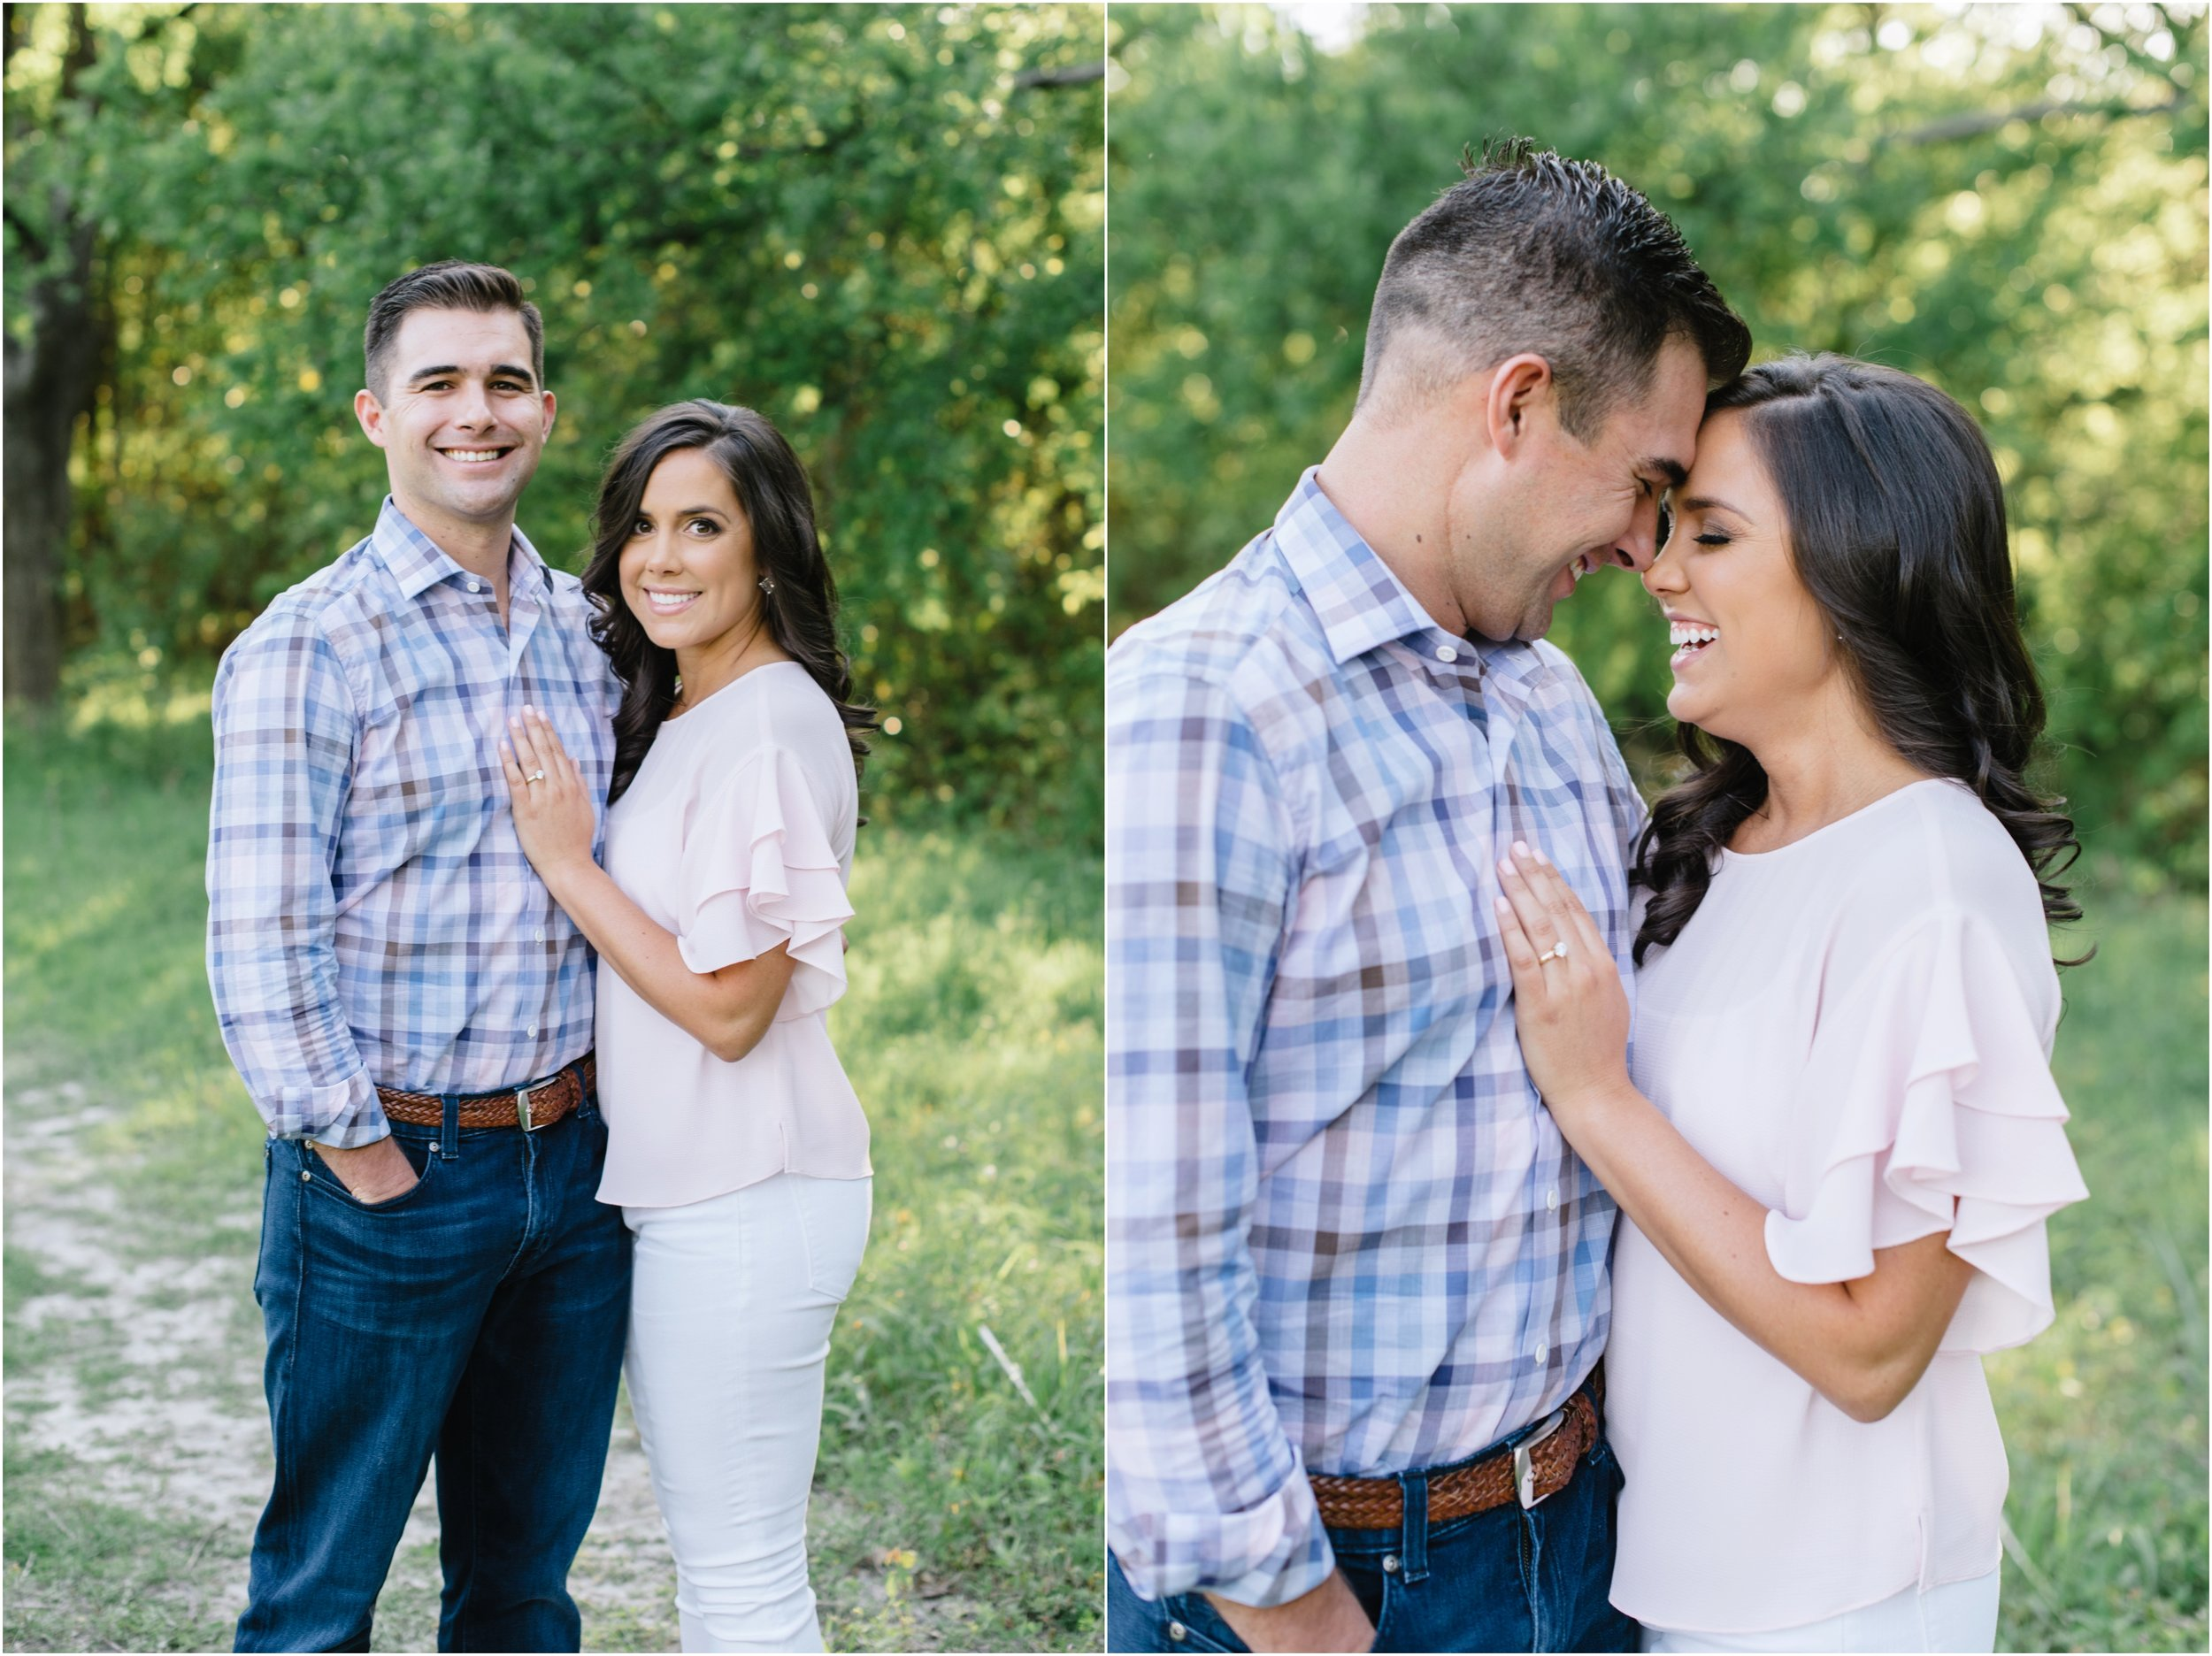 dallasweddingphotographer_texasweddingphotographer_texasweddingphotographers_dallasweddingphotographer_mattandjulieweddings_0850.jpg